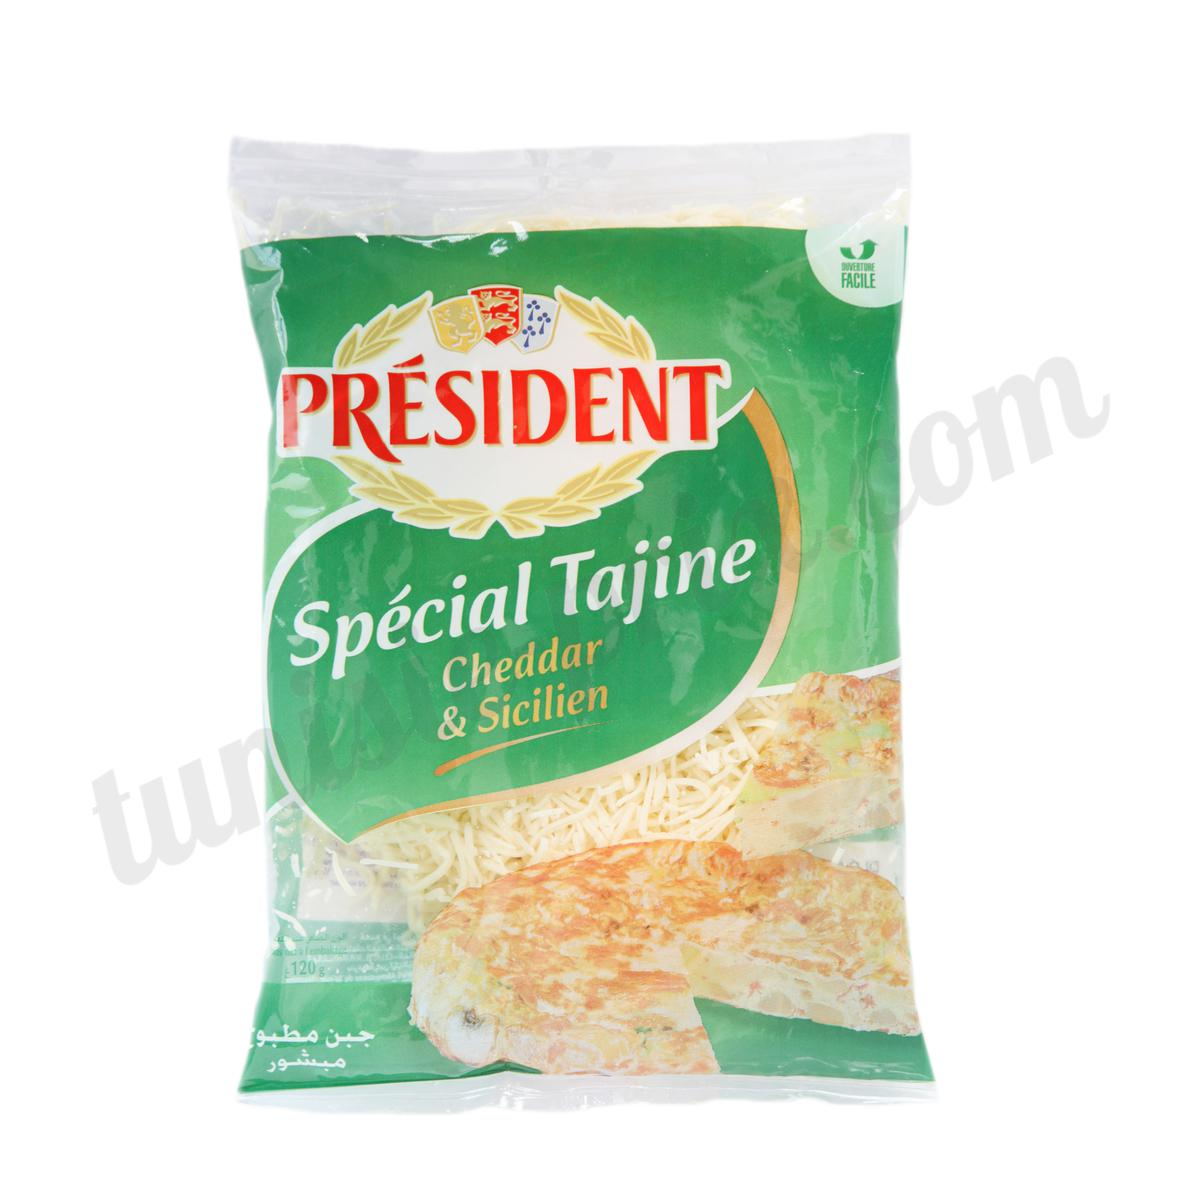 Fromage r p sp cial tajine pr sident 120g tunisie for Fromage en special